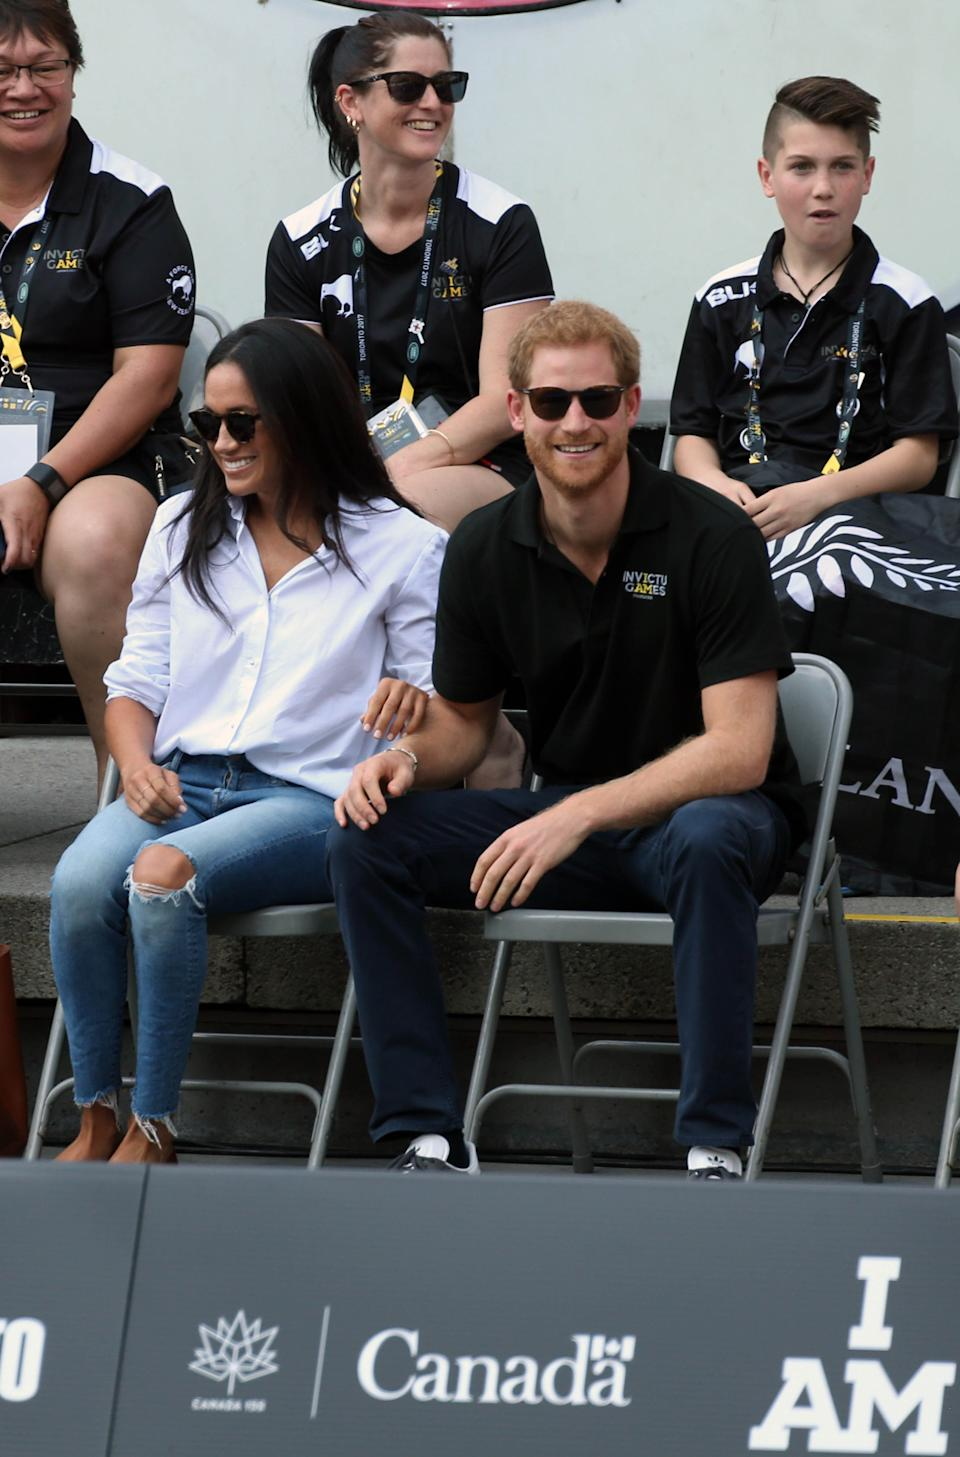 Prince Harry and Meghan Markle wedding date announced as May 19, 2018.   File Photo by: KGC-22/STAR MAX/IPx 2017 9/25/17 Prince Harry and Meghan Markle are seen at The Invictus Games in Toronto, Ontario, Canada.